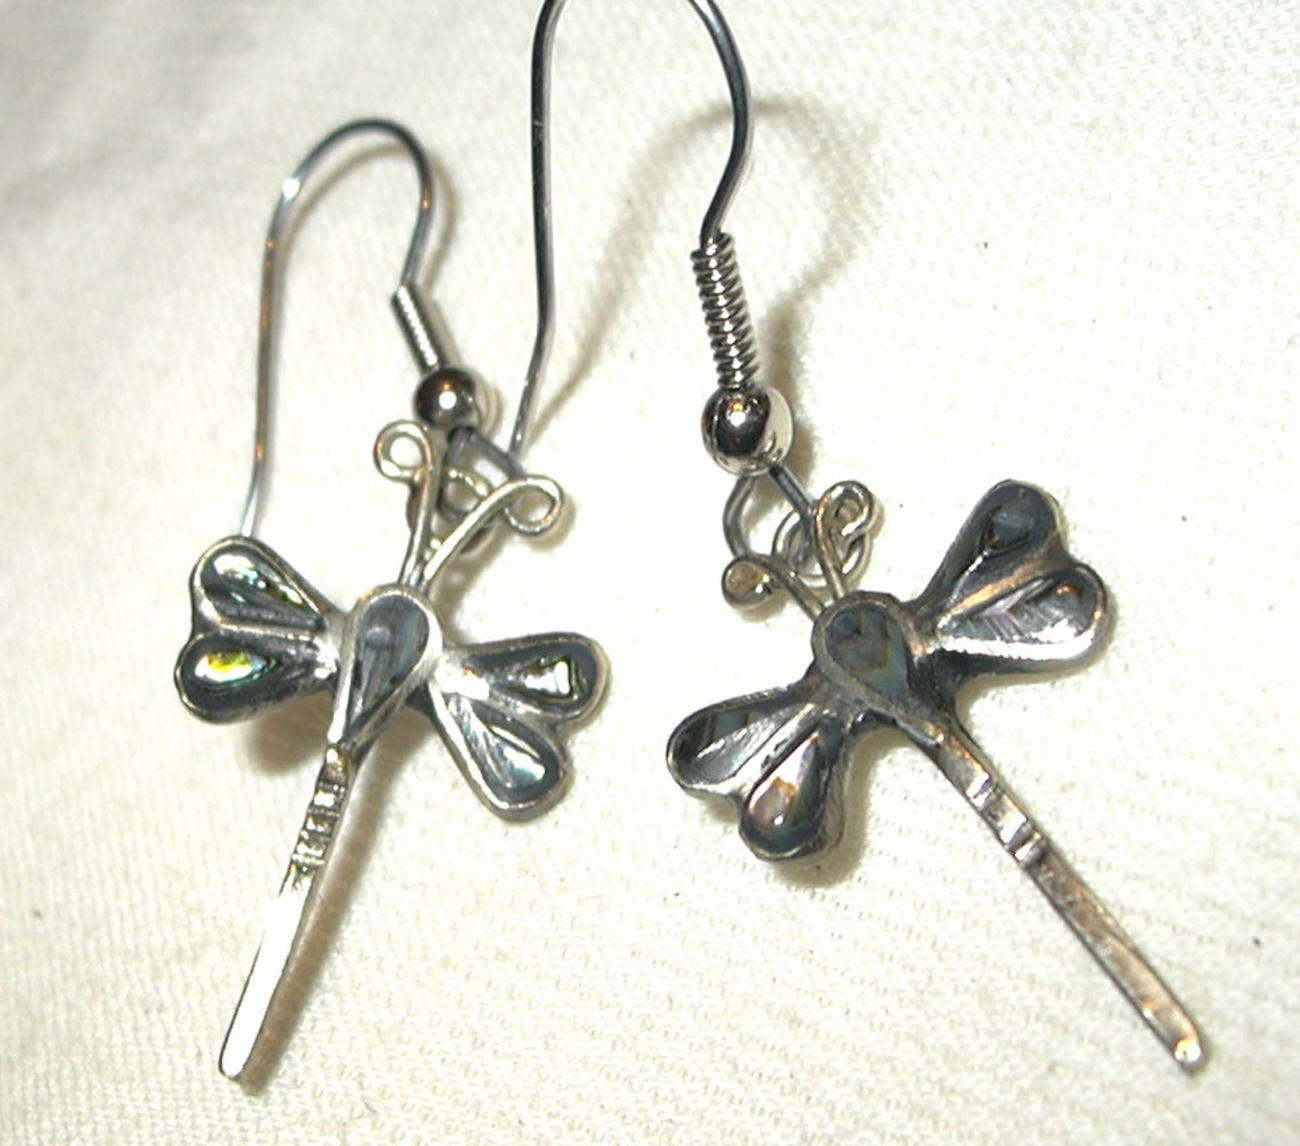 j108 Dragonfly Abalone Shell inlay Earrings Pierced Drop Dangly